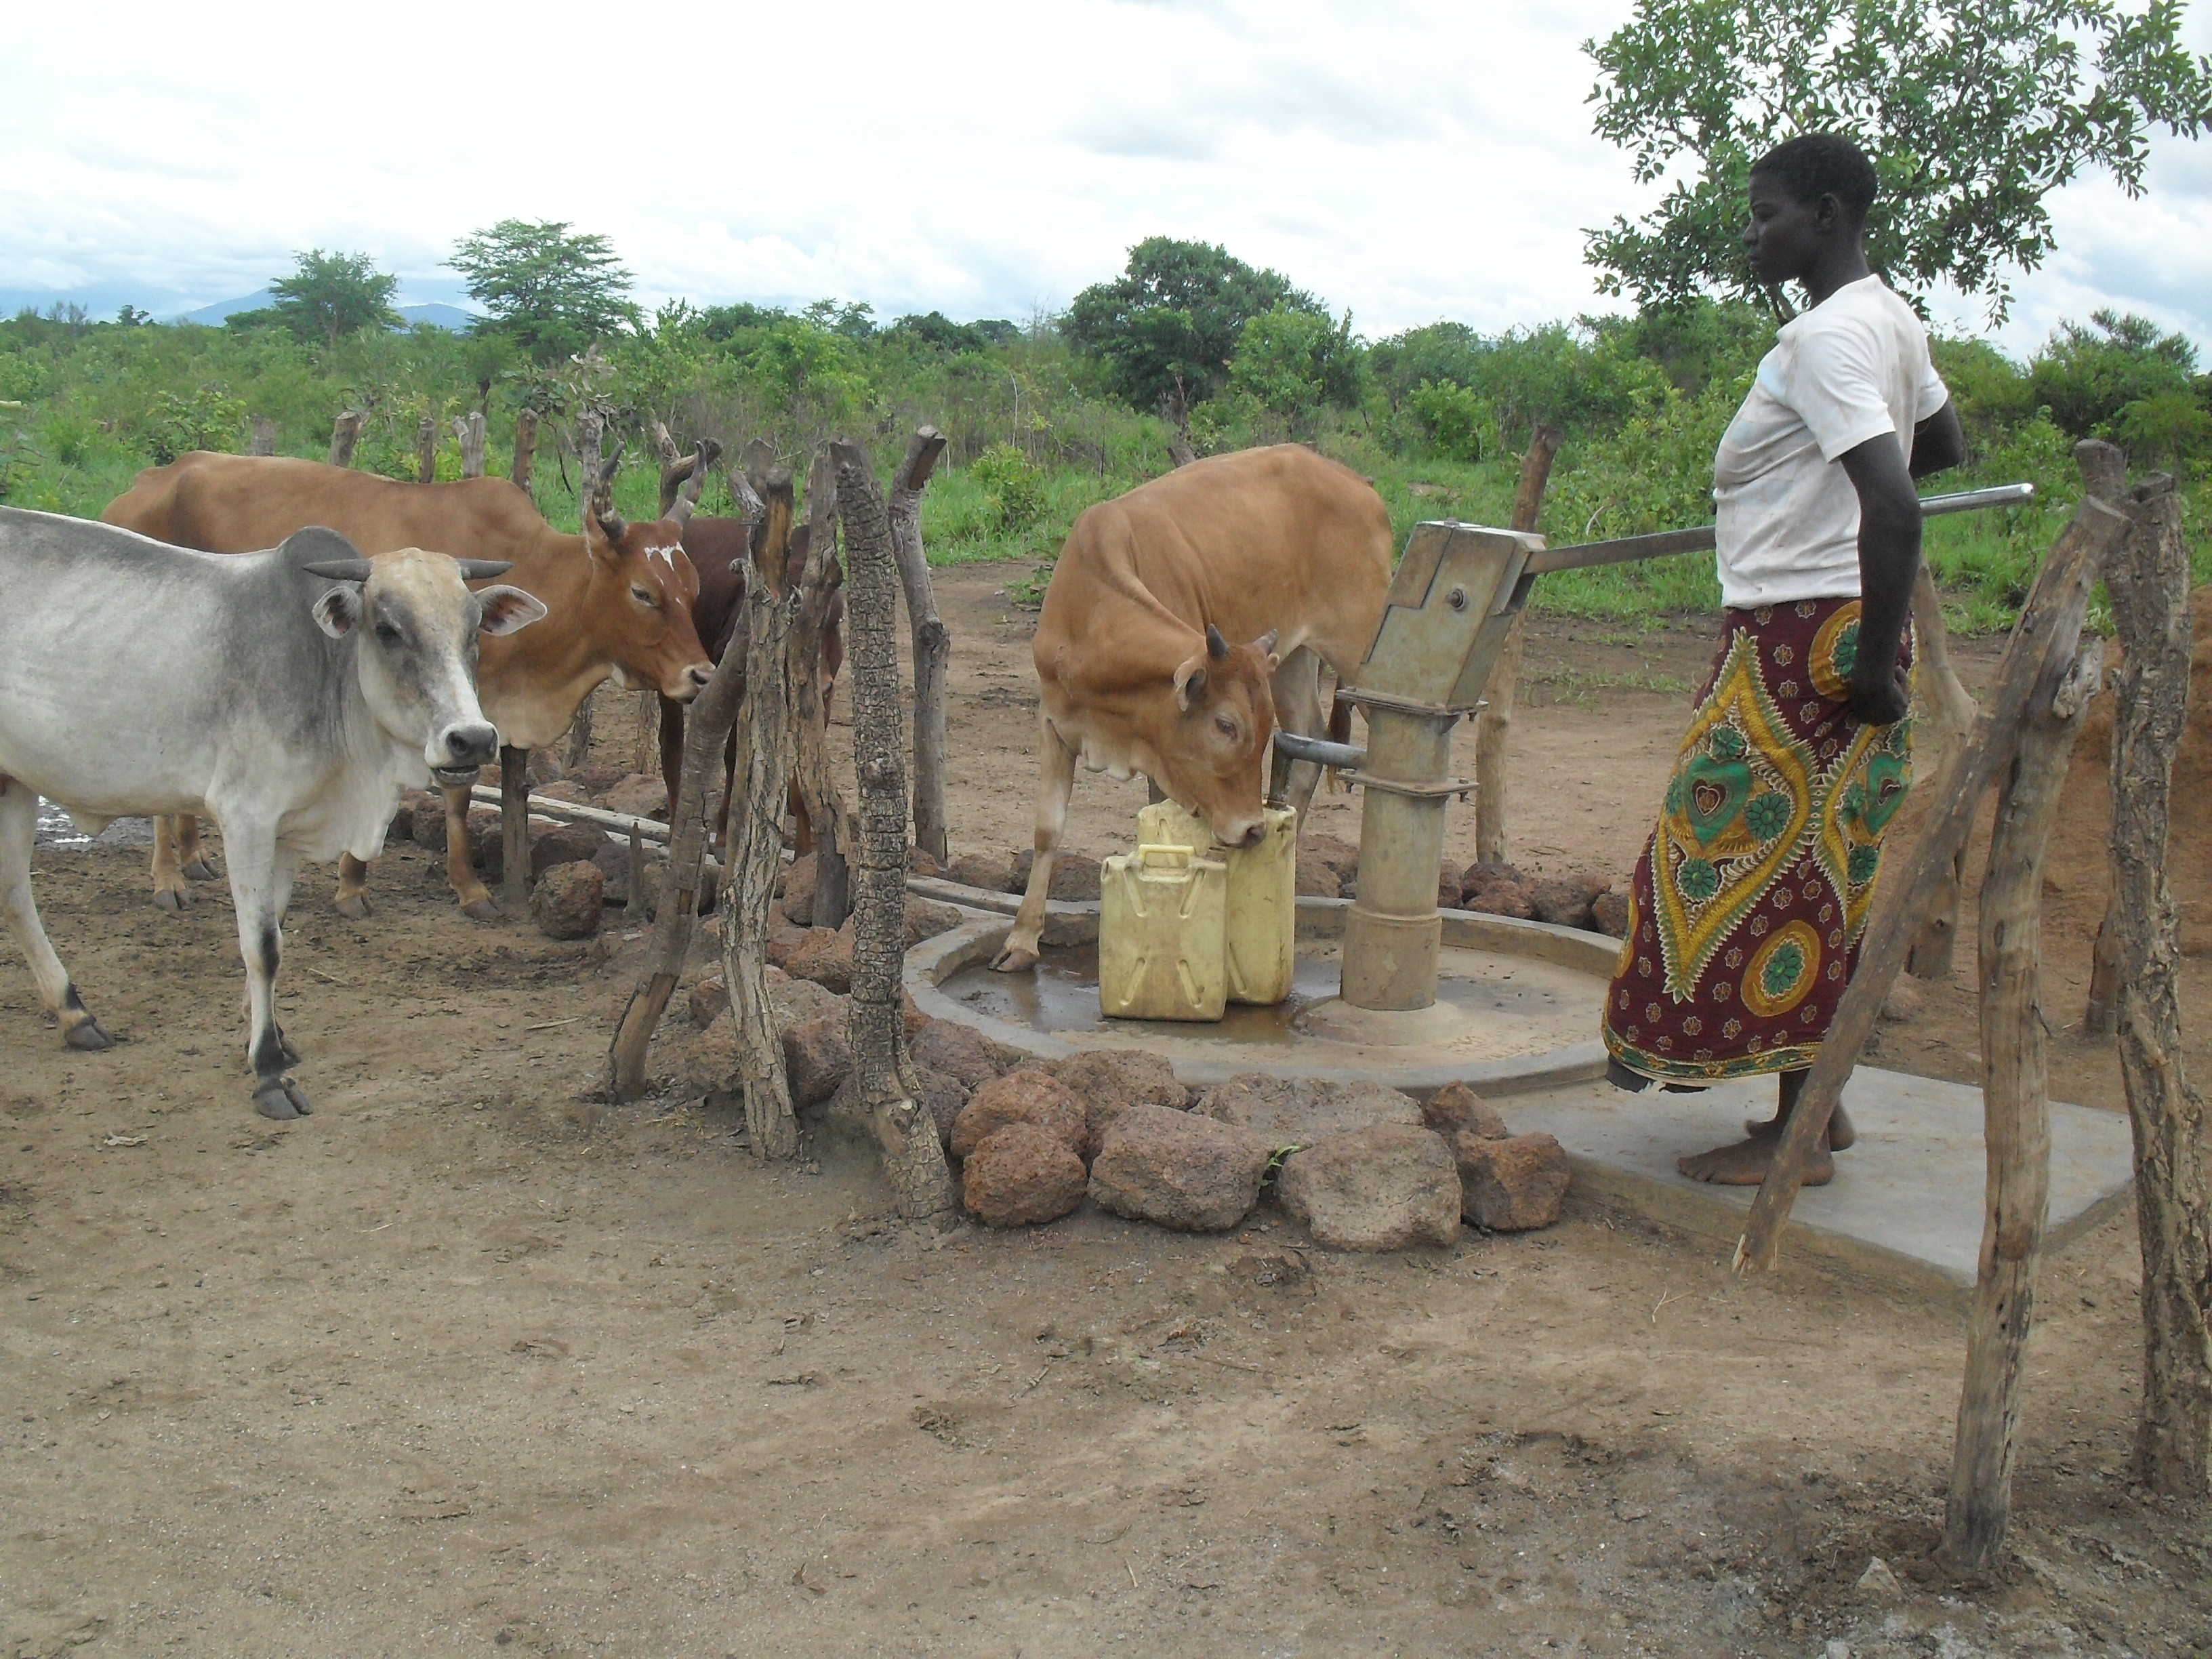 how to get clean water in africa